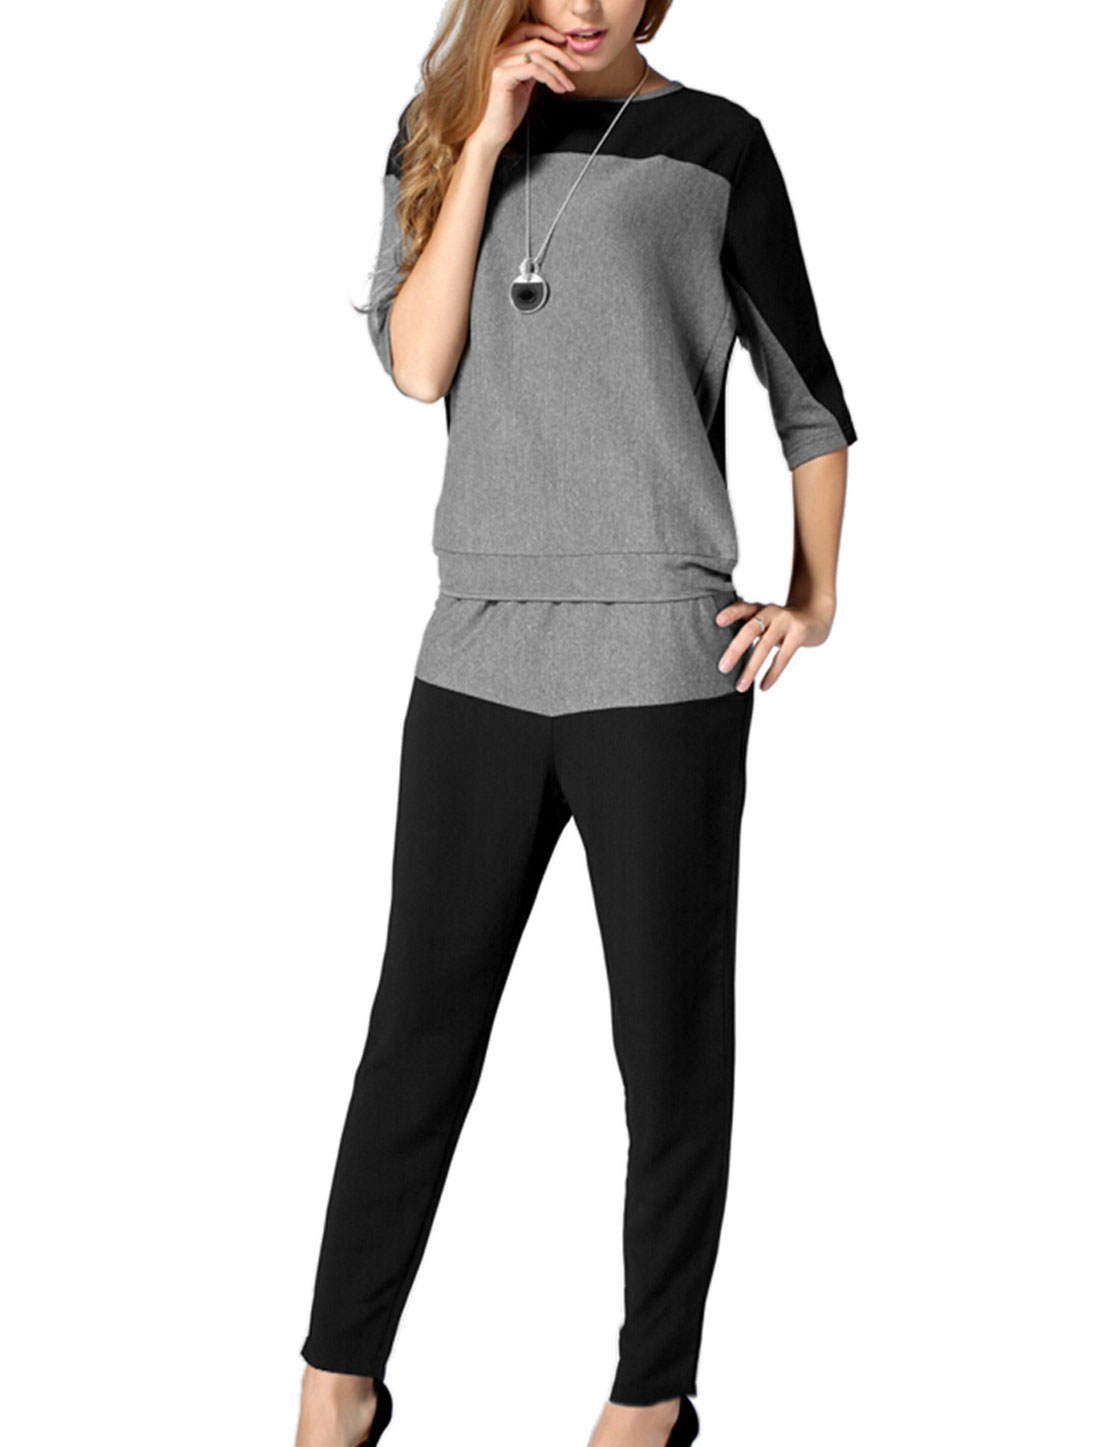 Lady Black Gray Pullover Color Block Top w Drawstring Elastic Capris Pants Set XS